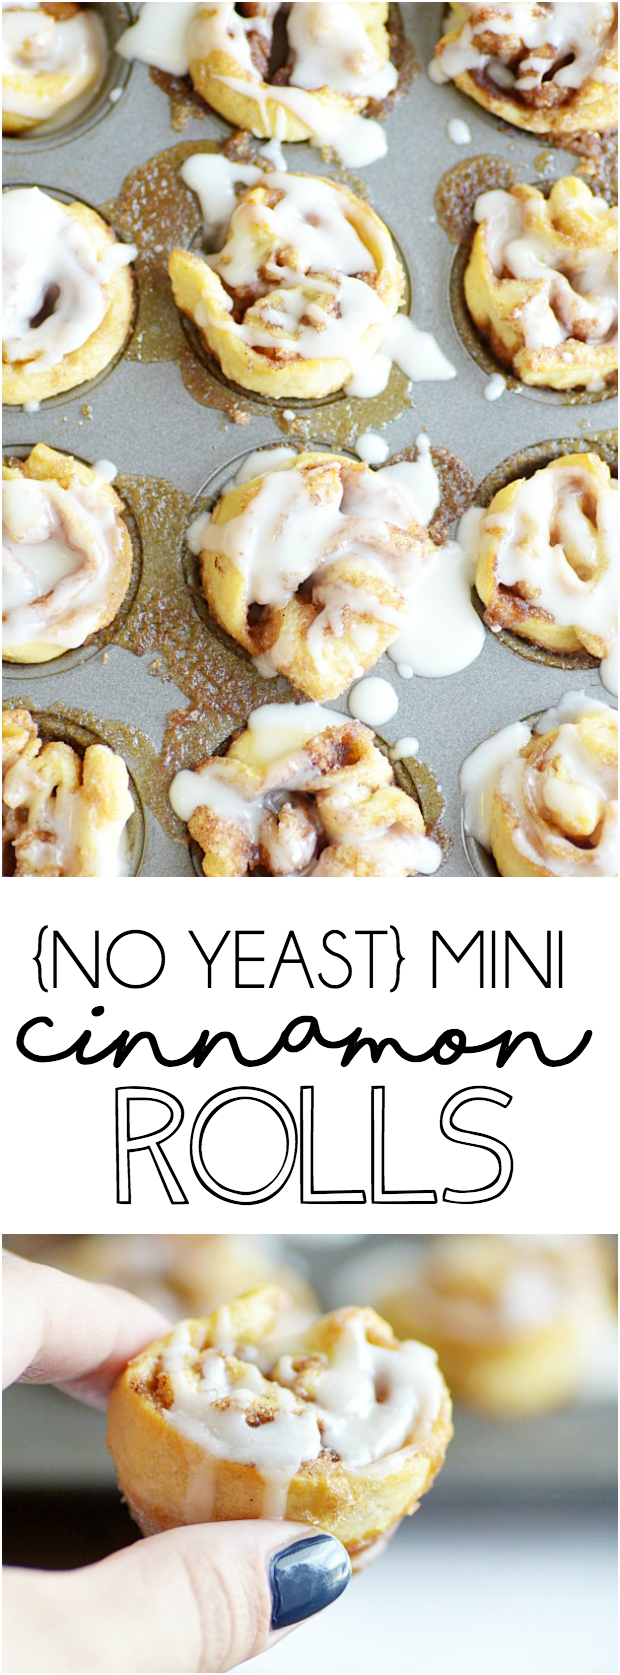 These melt in your mouth cinnamon rolls couldn't be easier thanks to refrigerated crescent roll dough!